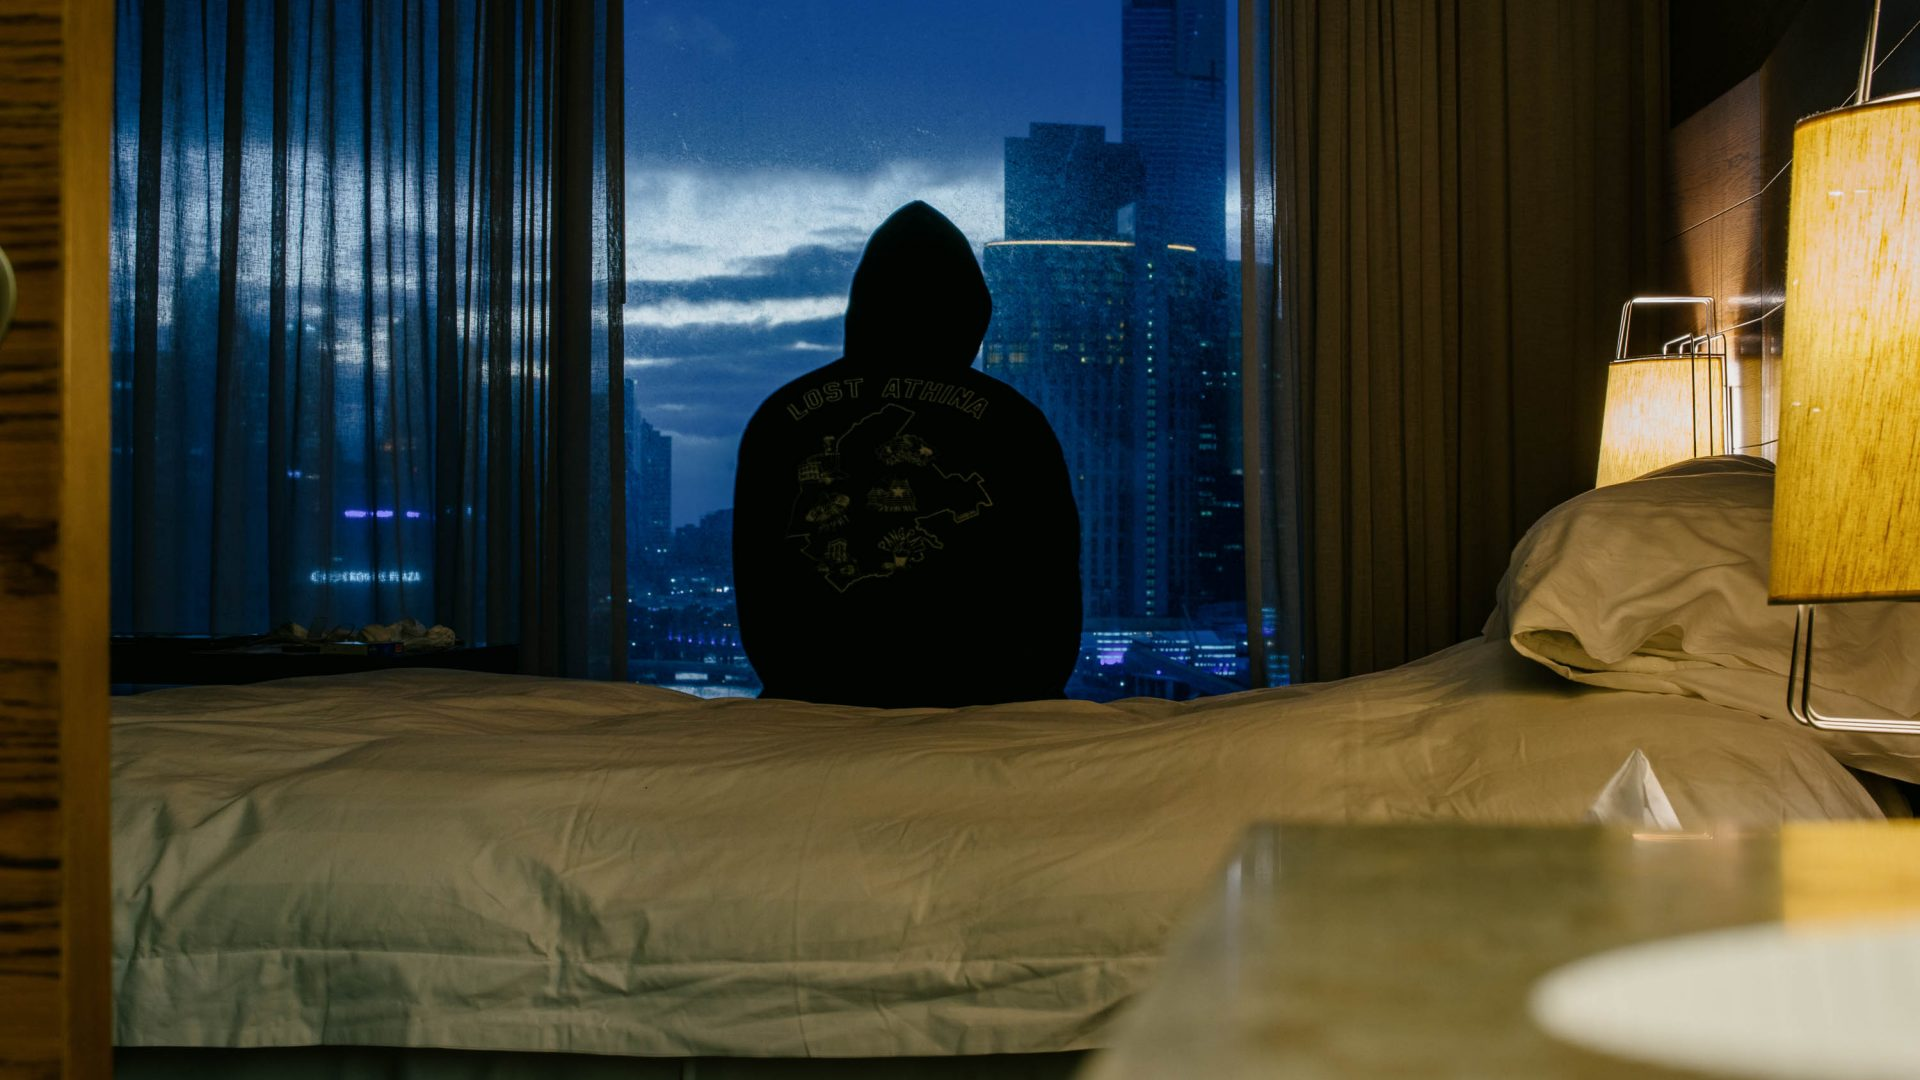 Silhouette wearing a hood against the window.